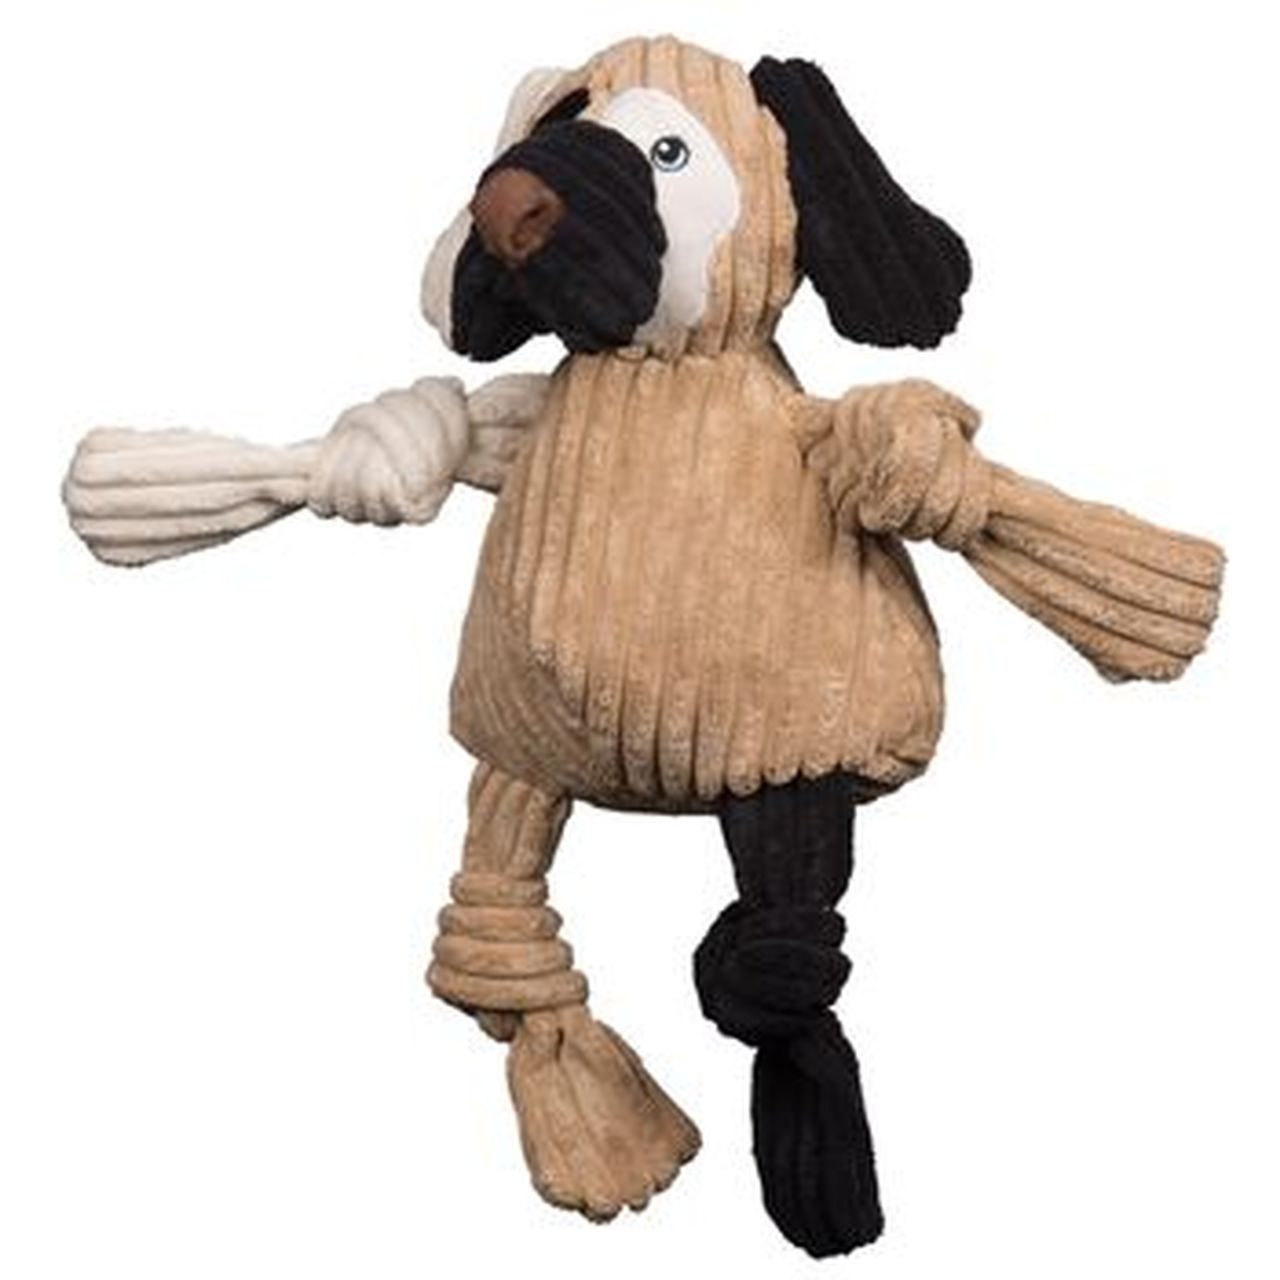 HuggleHounds Knottie HuggleMutt Patches Dog Toy, Large